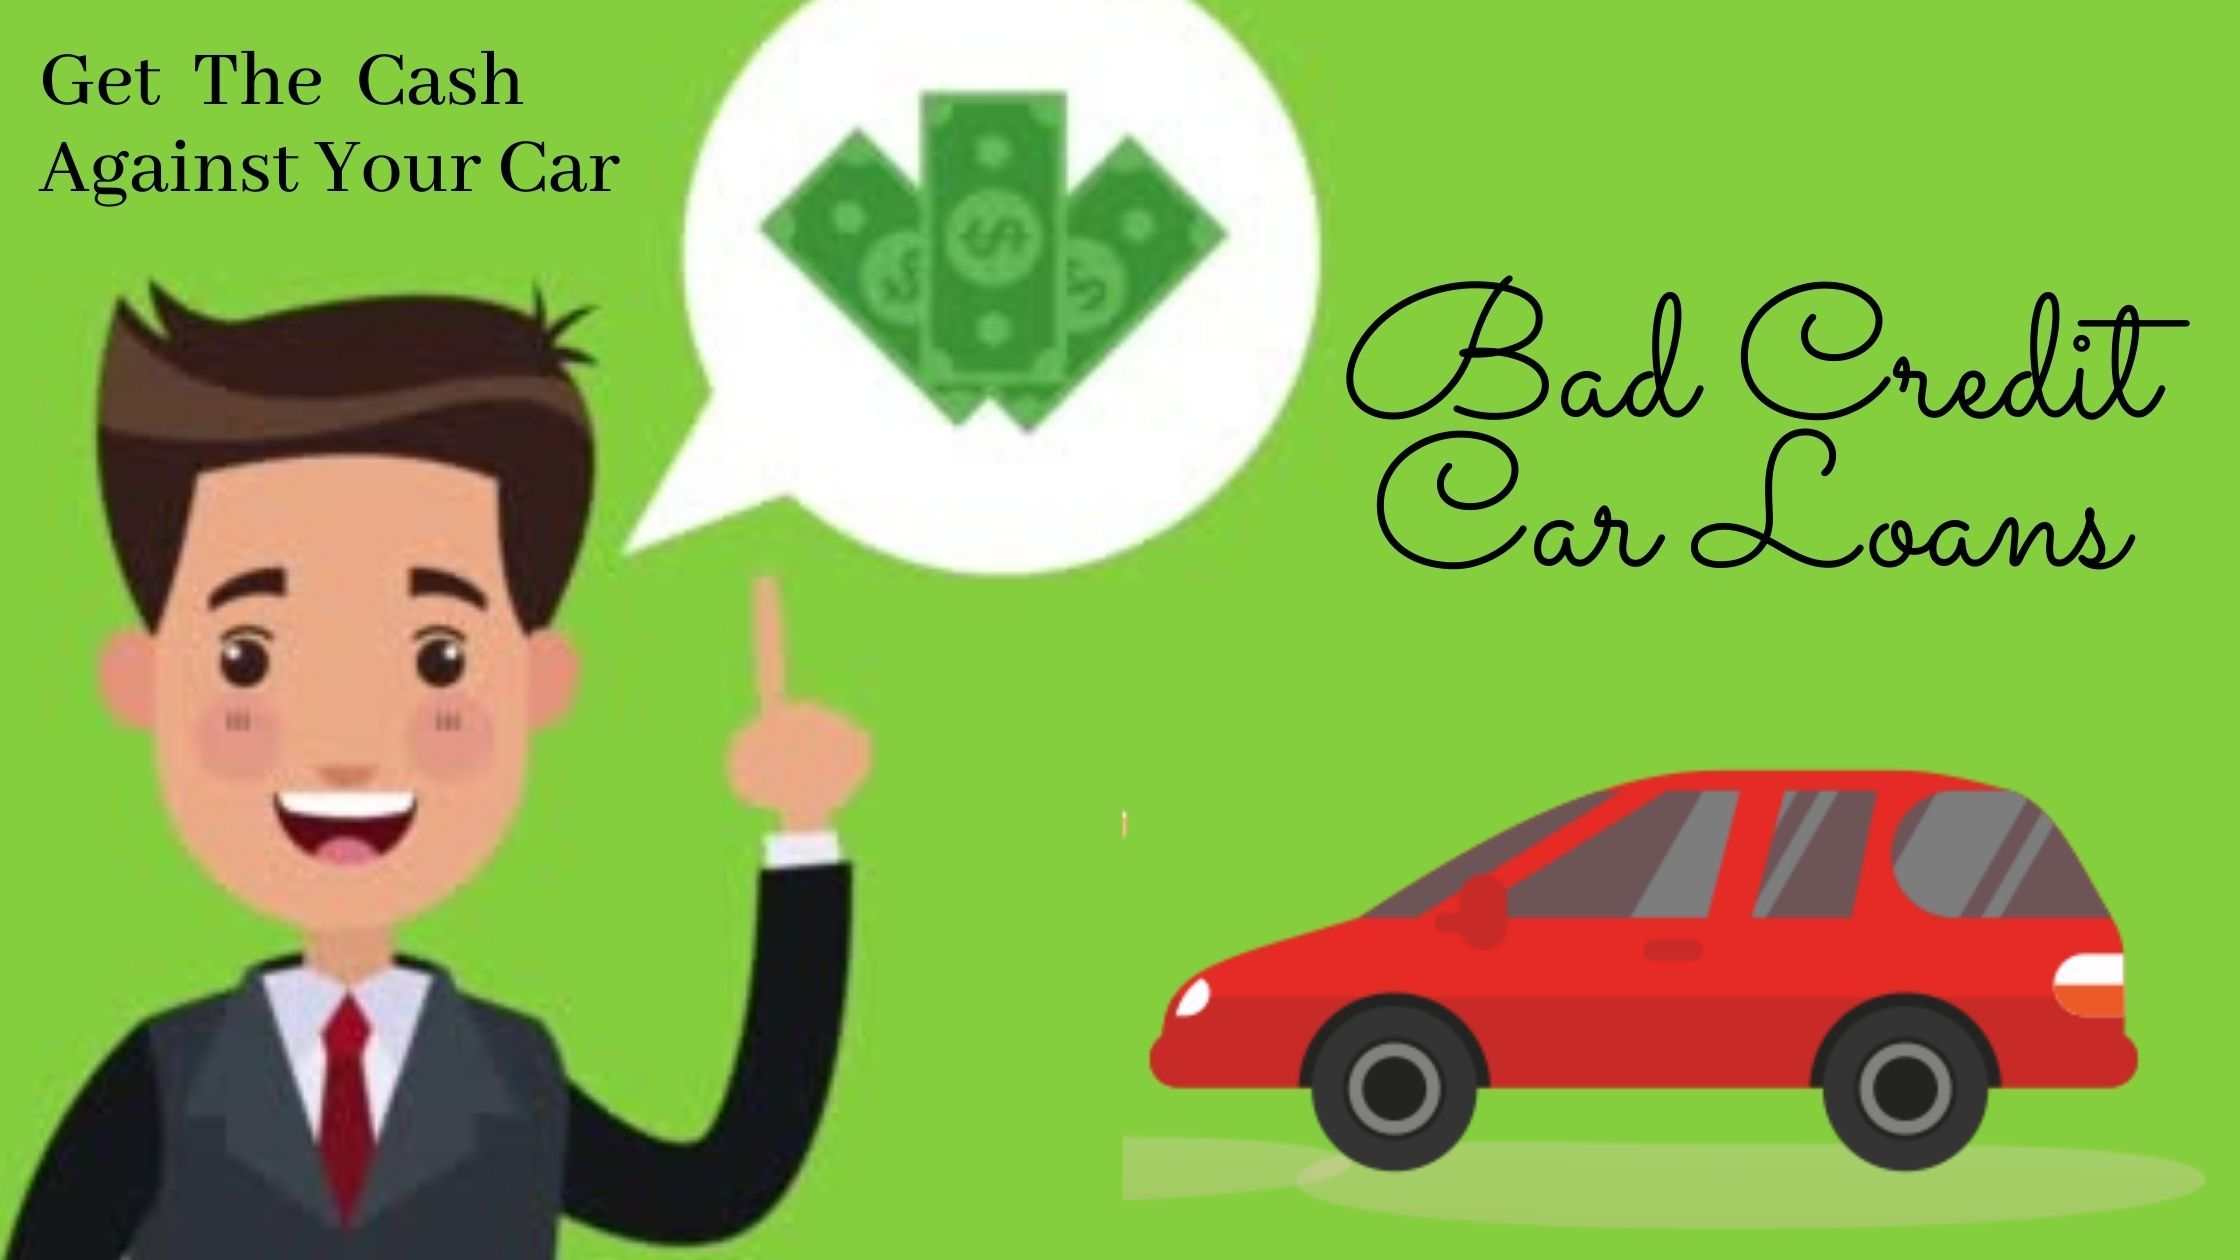 Unemployed Get The Money With Bad Credit Car Loans Alberta In 2020 Bad Credit Car Loan Car Loans Credit Cars